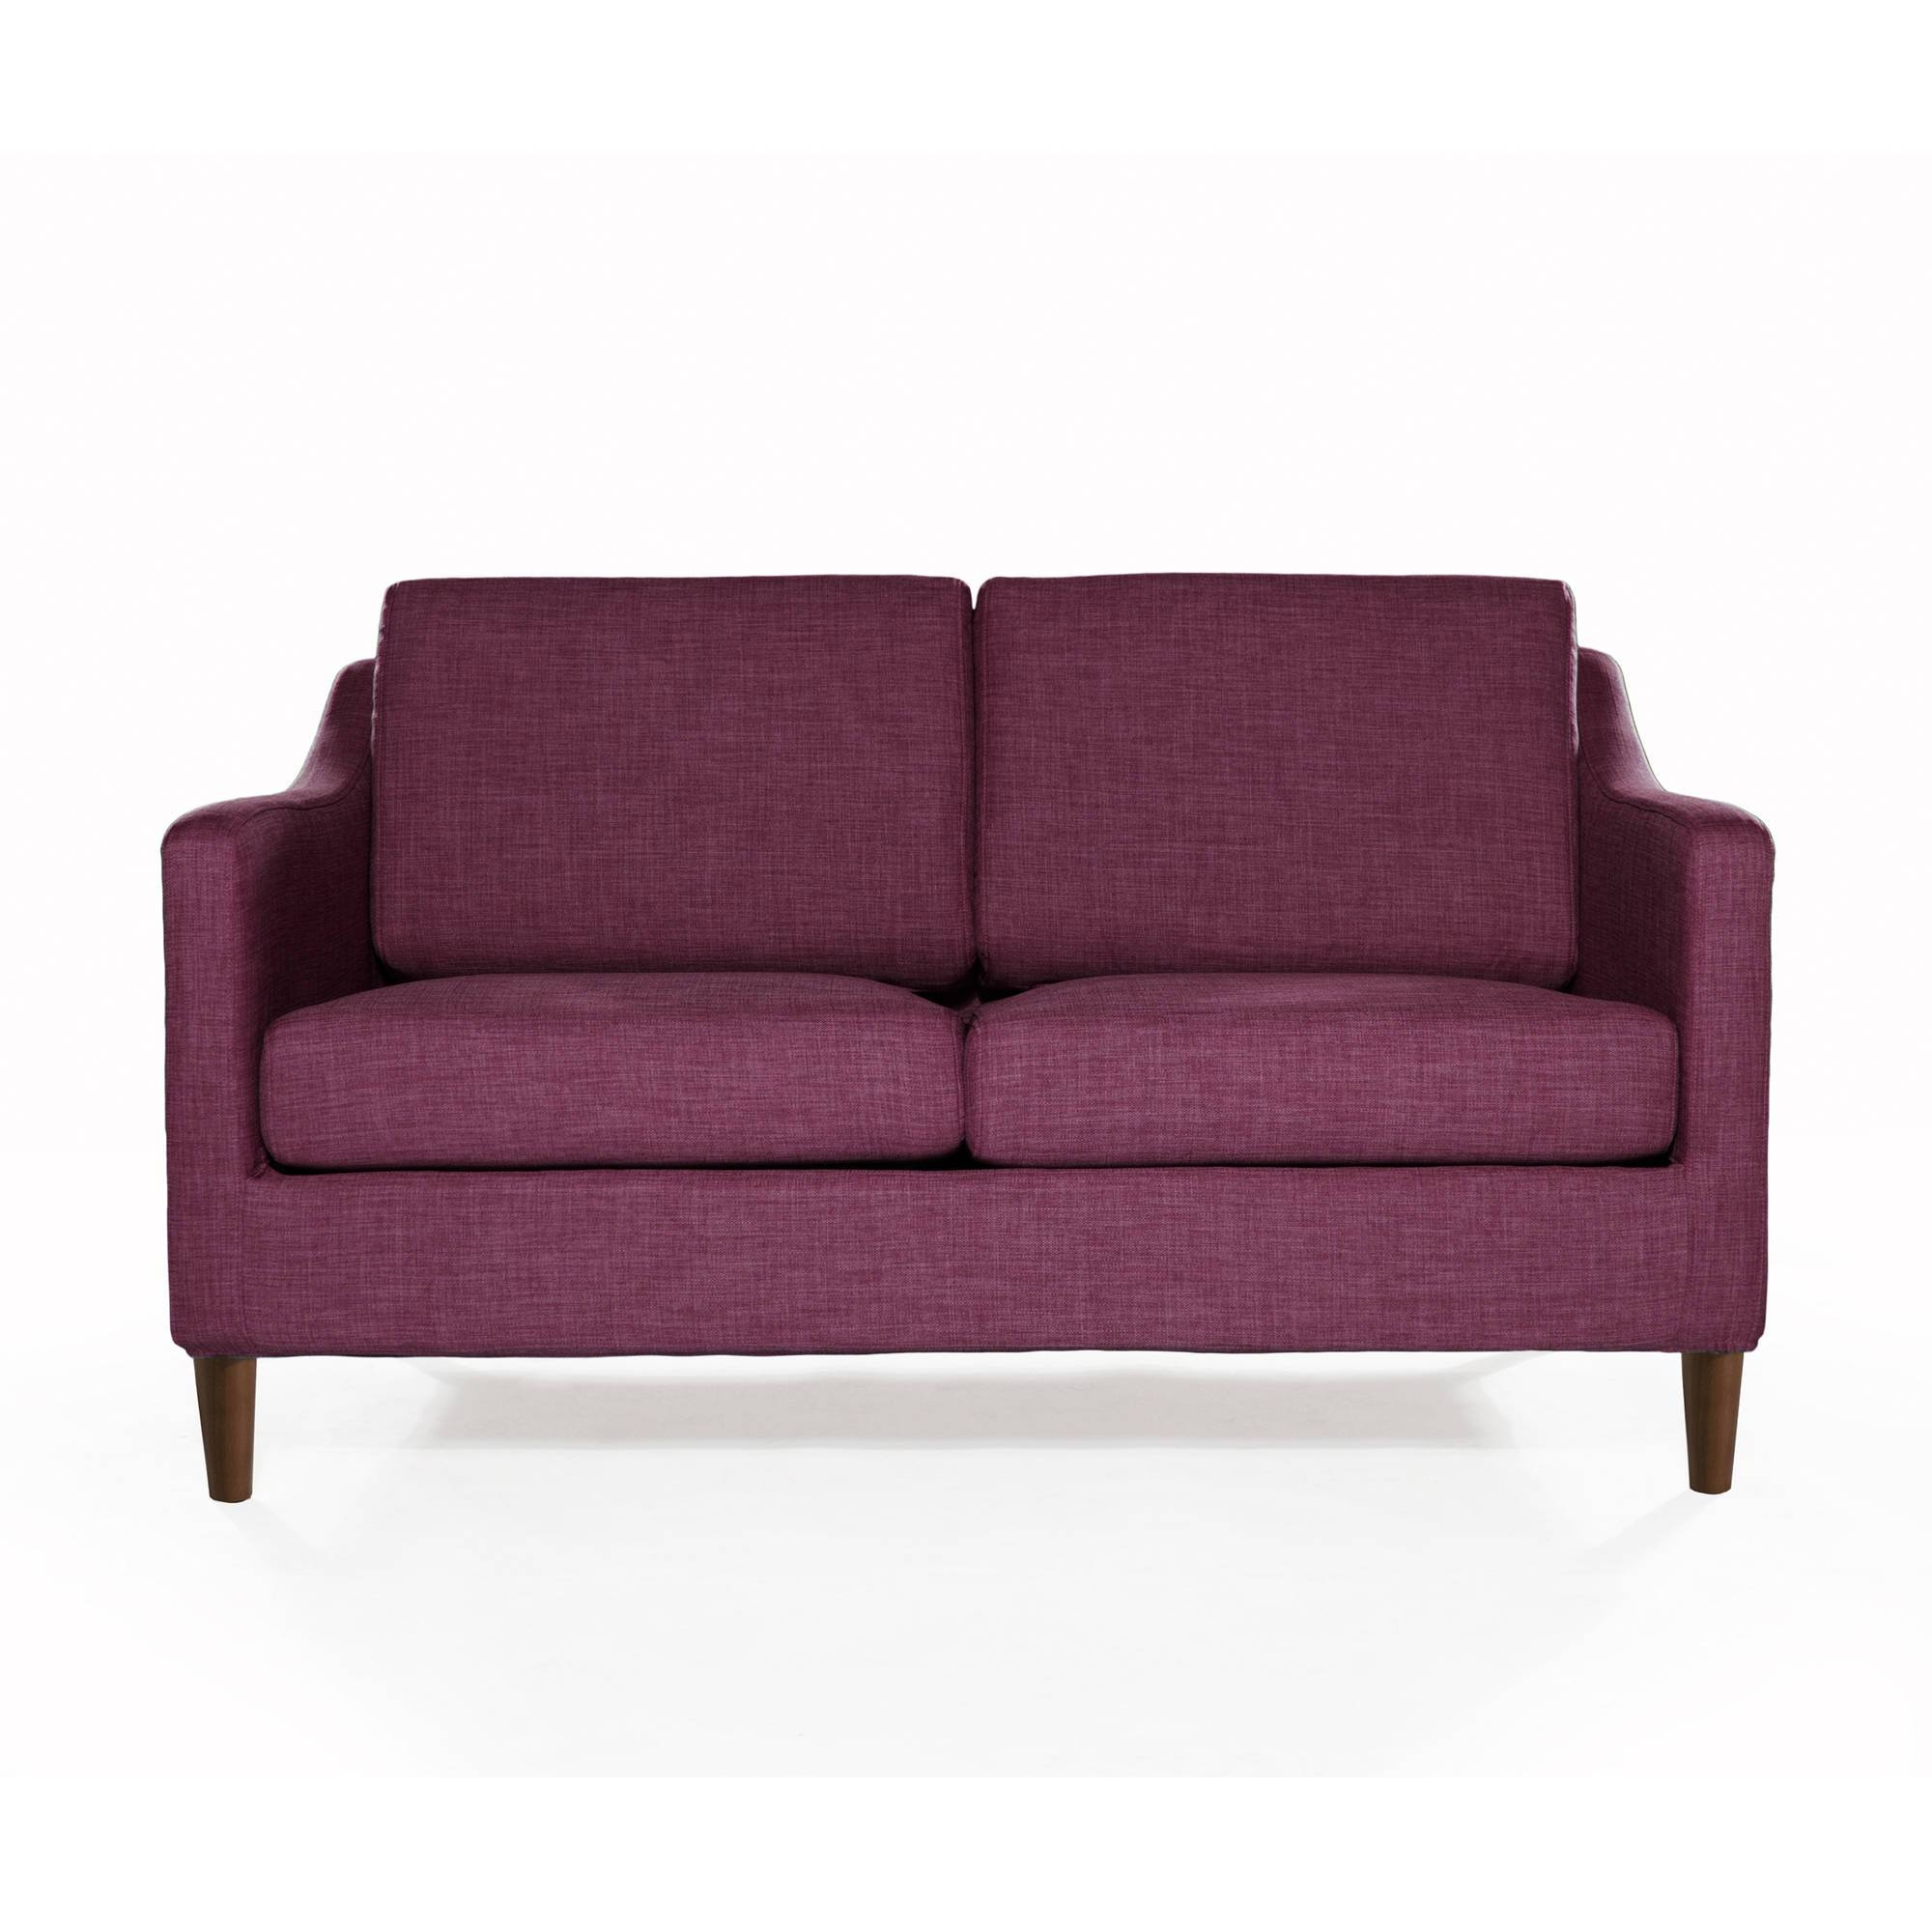 Elegant sectional sofas overstock sectional sofas for Sectional sofa bed overstock